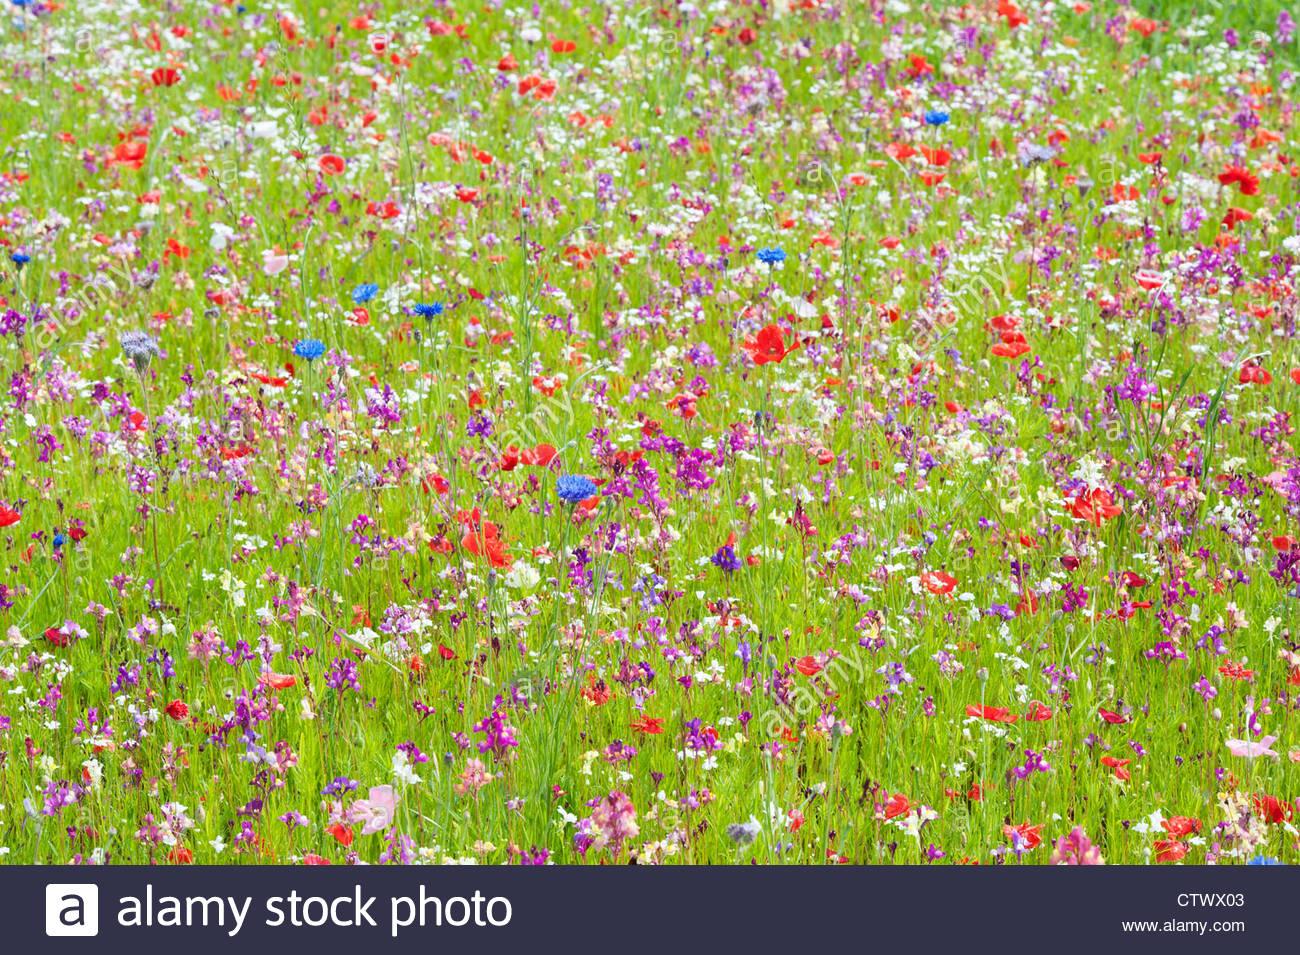 cornflowers poppies stockfotos cornflowers poppies bilder alamy. Black Bedroom Furniture Sets. Home Design Ideas